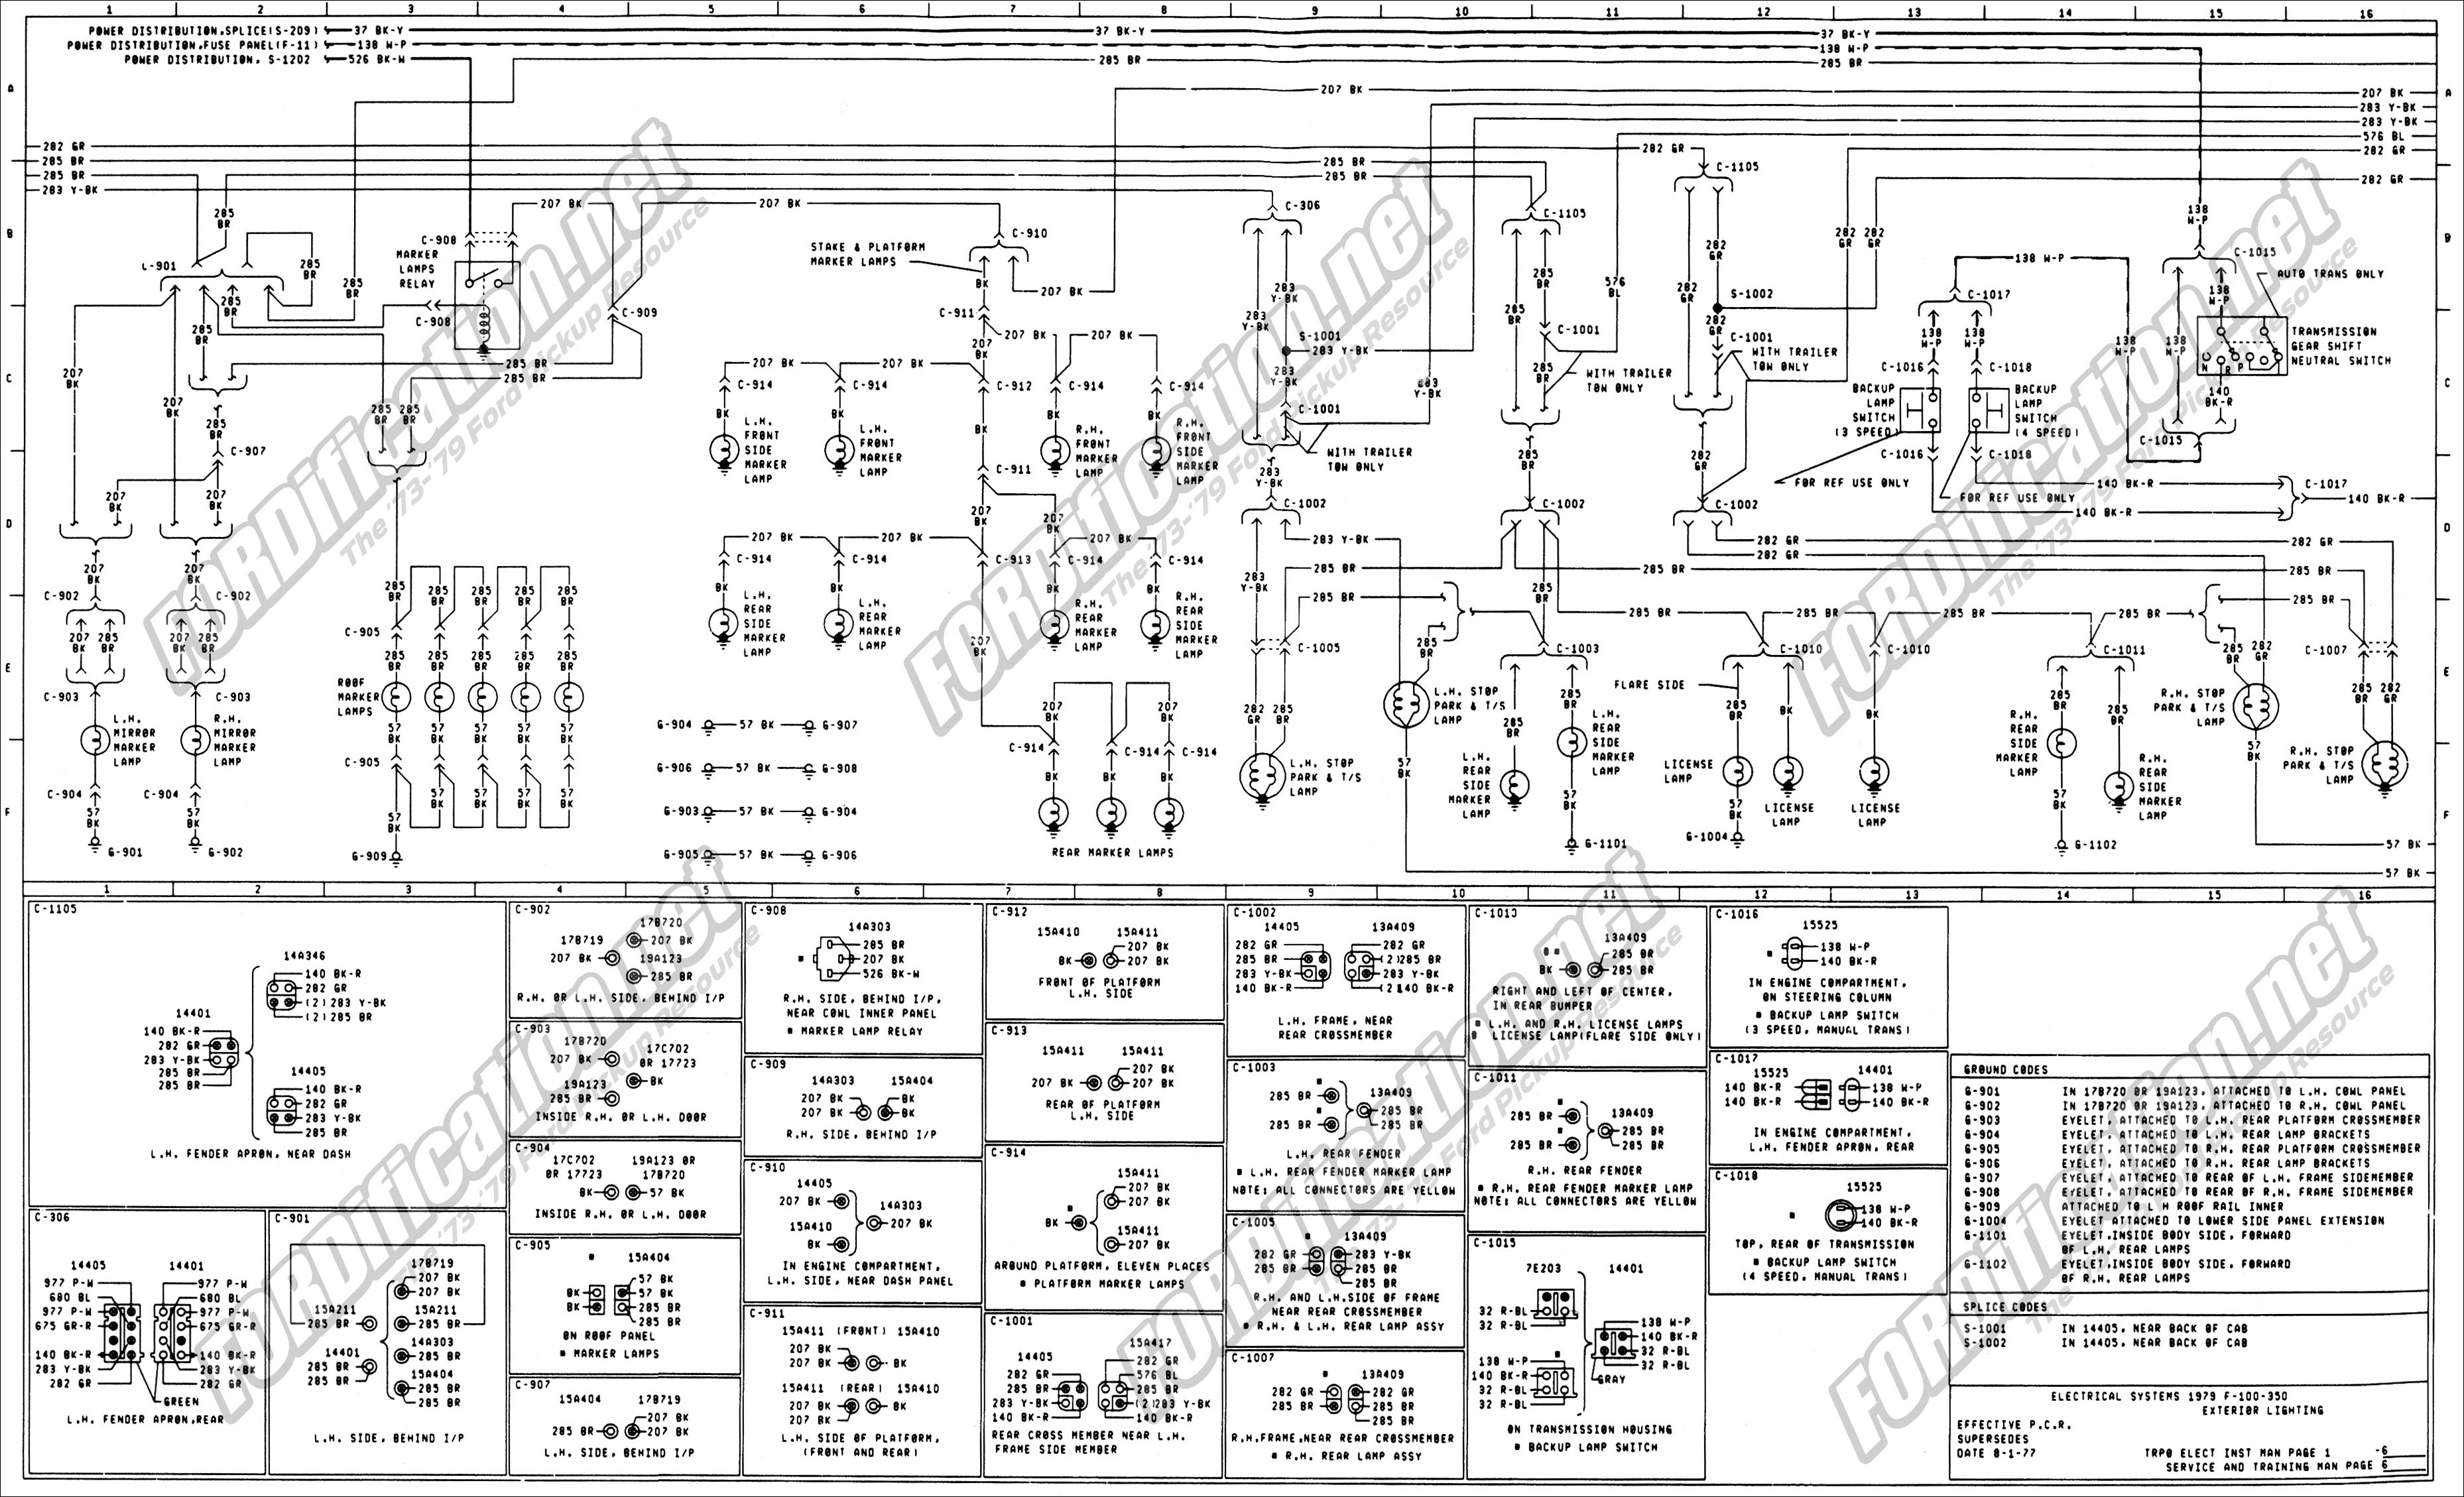 2011 ford f150 headlight wiring diagram 2011 image ford f550 wiring diagrams ford auto wiring diagram schematic on 2011 ford f150 headlight wiring diagram